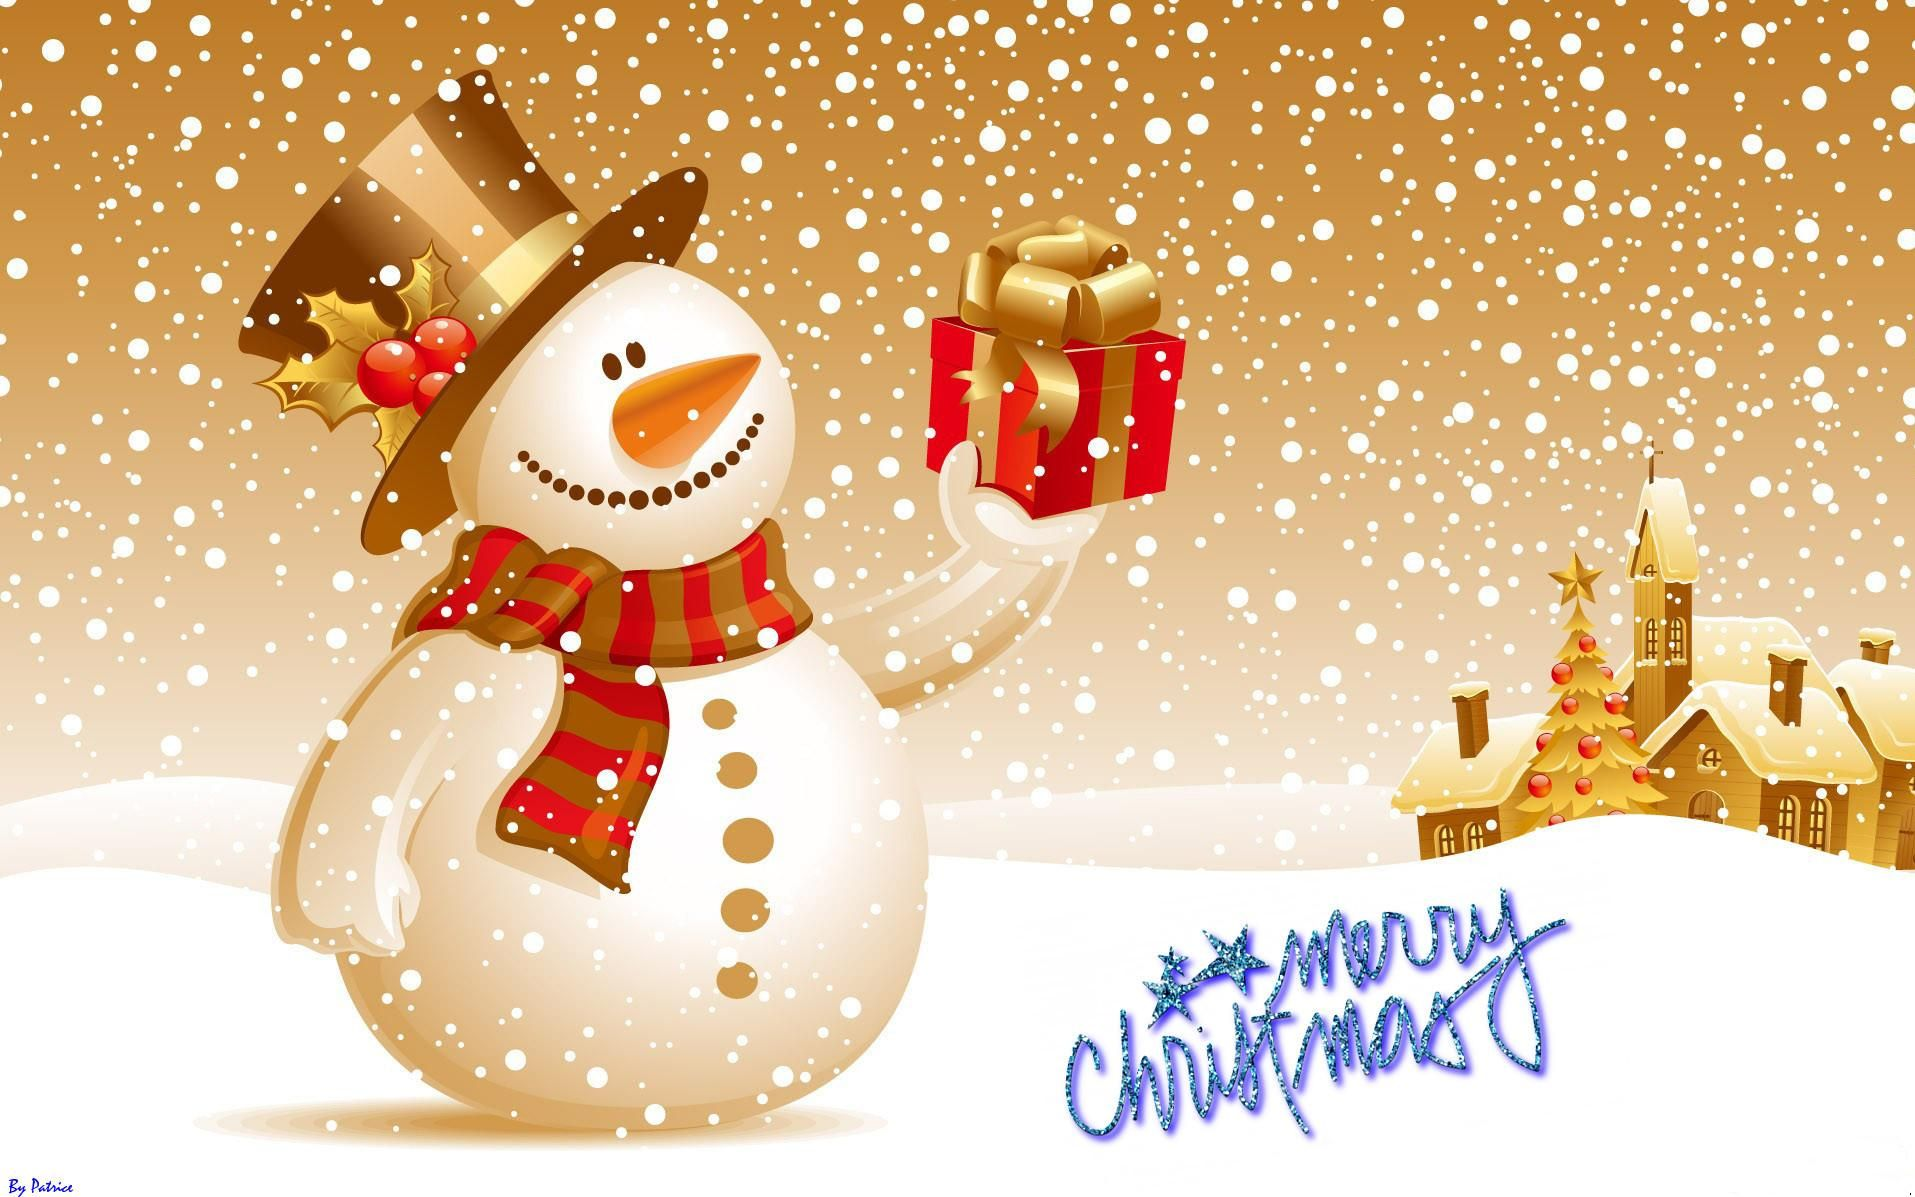 Merry Christmas Wallpaper | HD Wallpapers